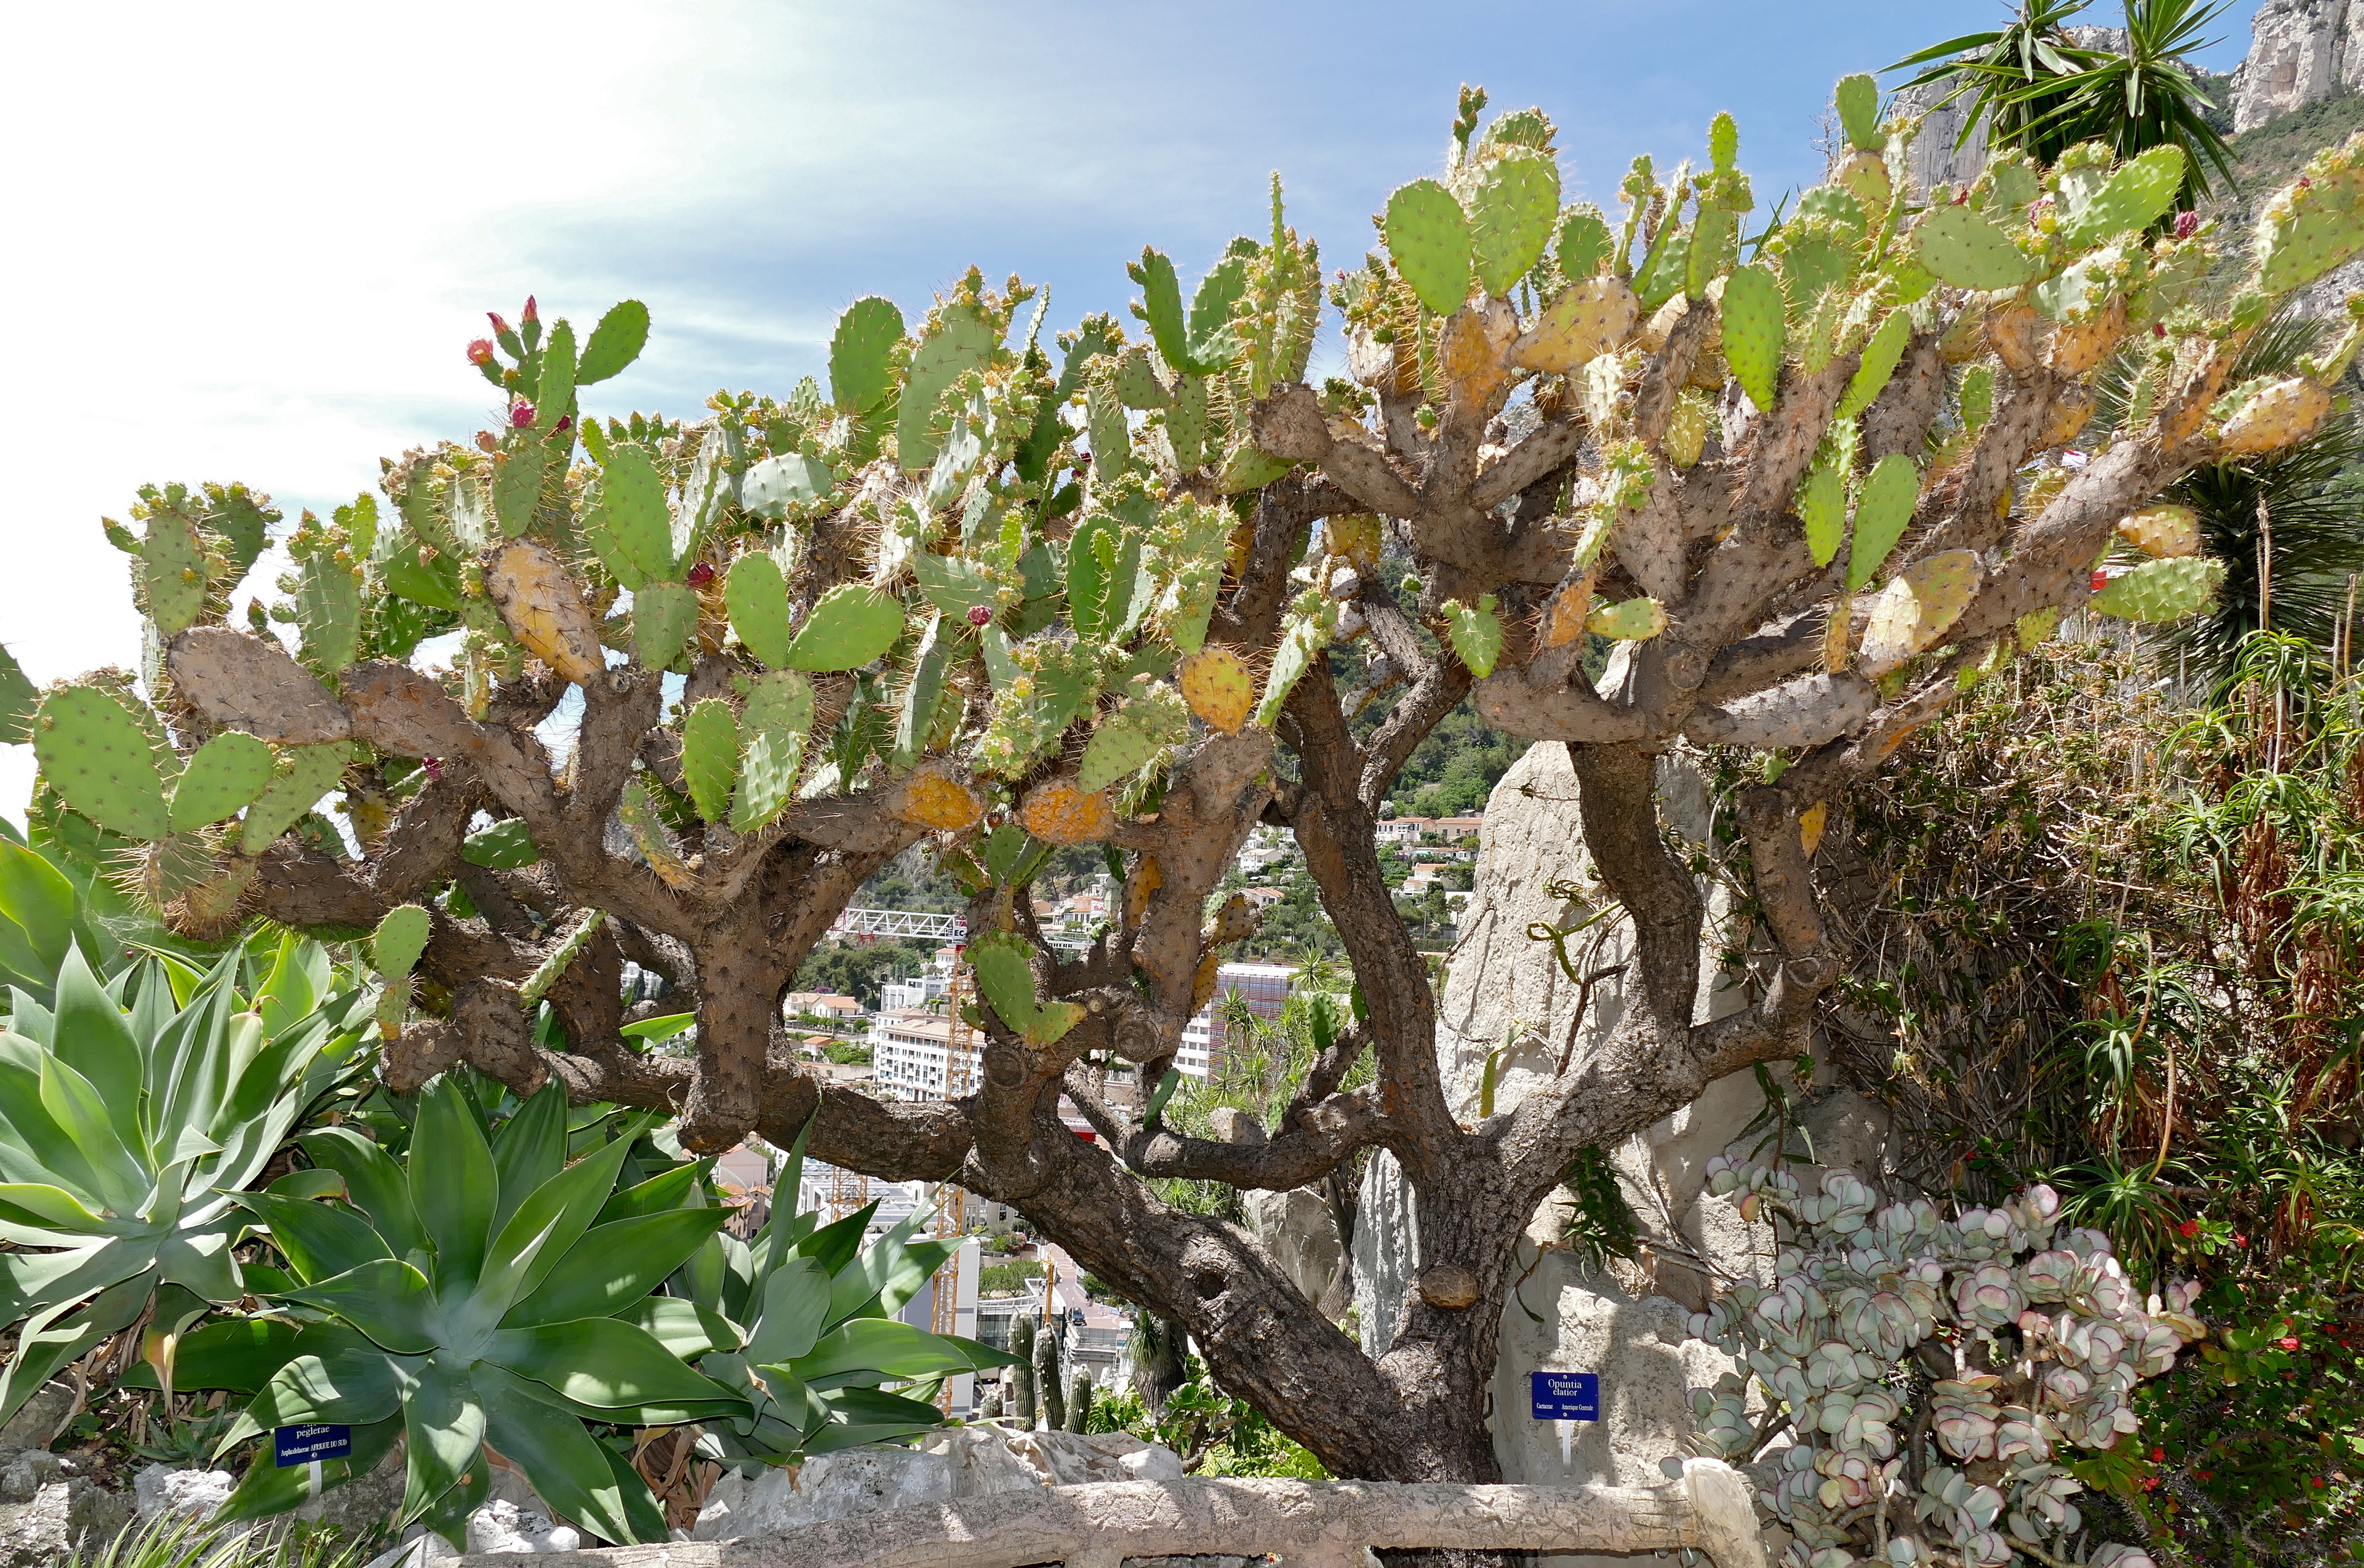 Image of French Prickle Cactus